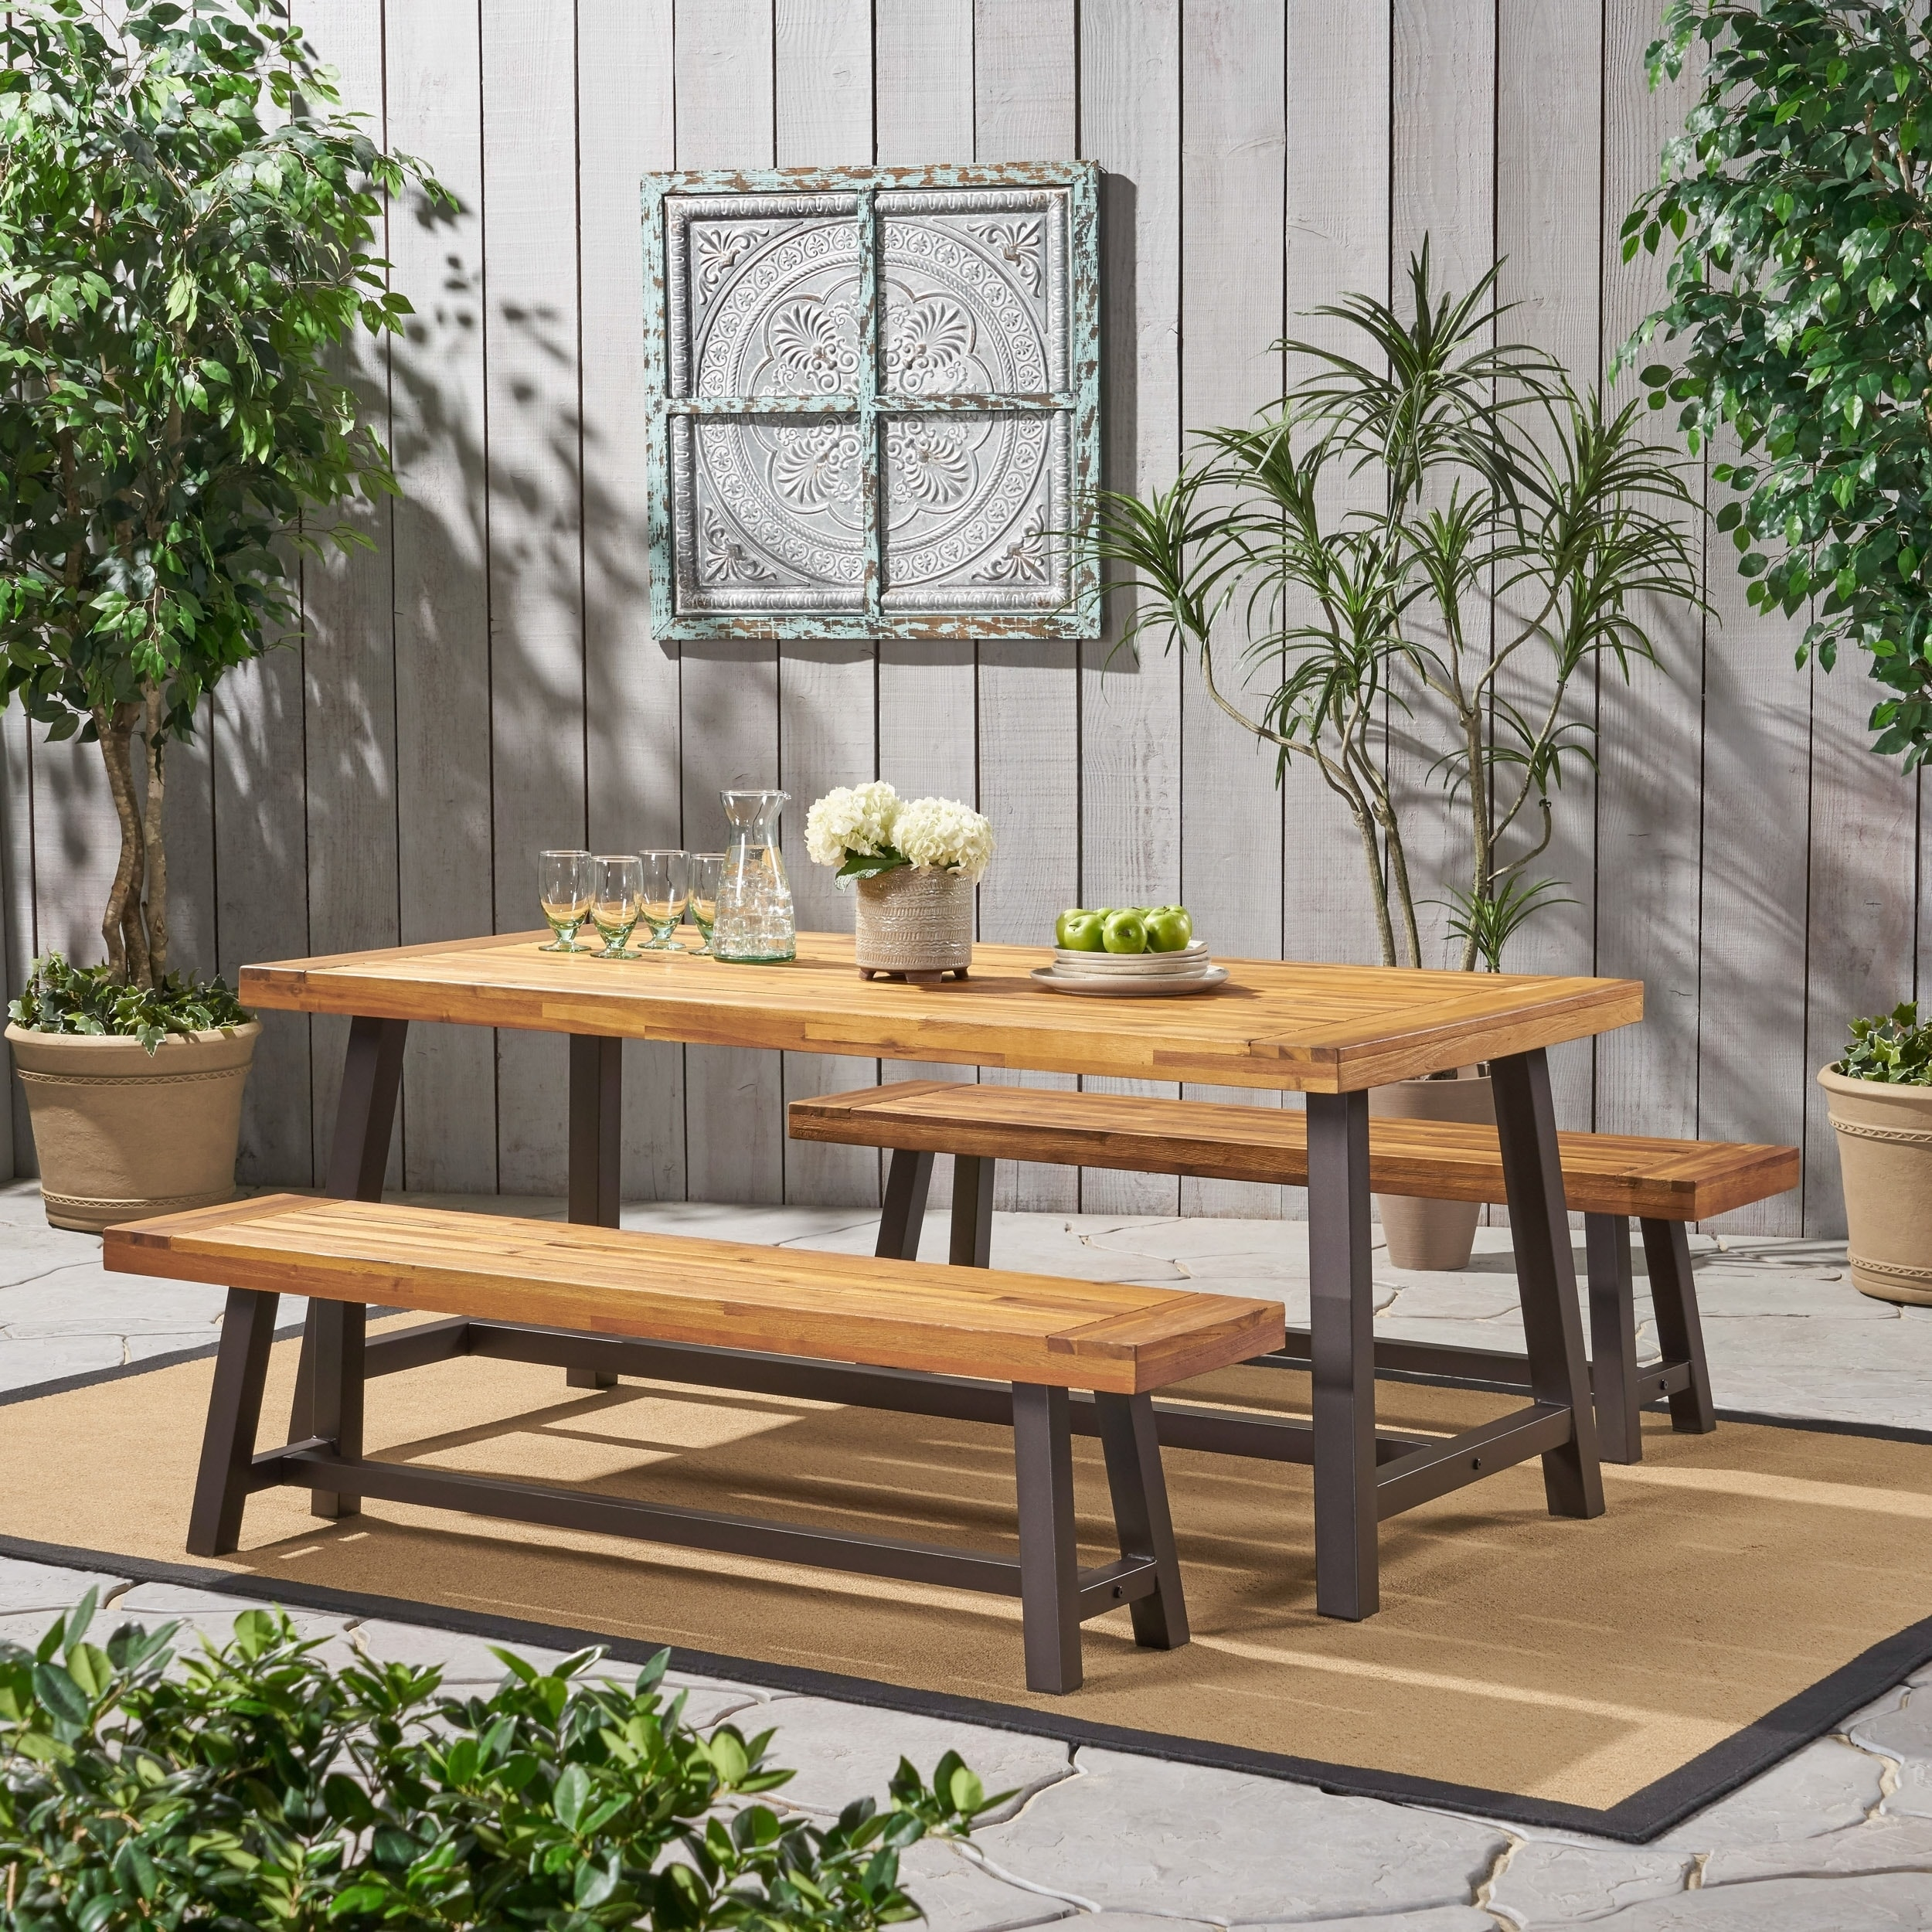 Buy Rustic Wood Outdoor Dining Sets Online At Overstock Our Best Patio Furniture Deals